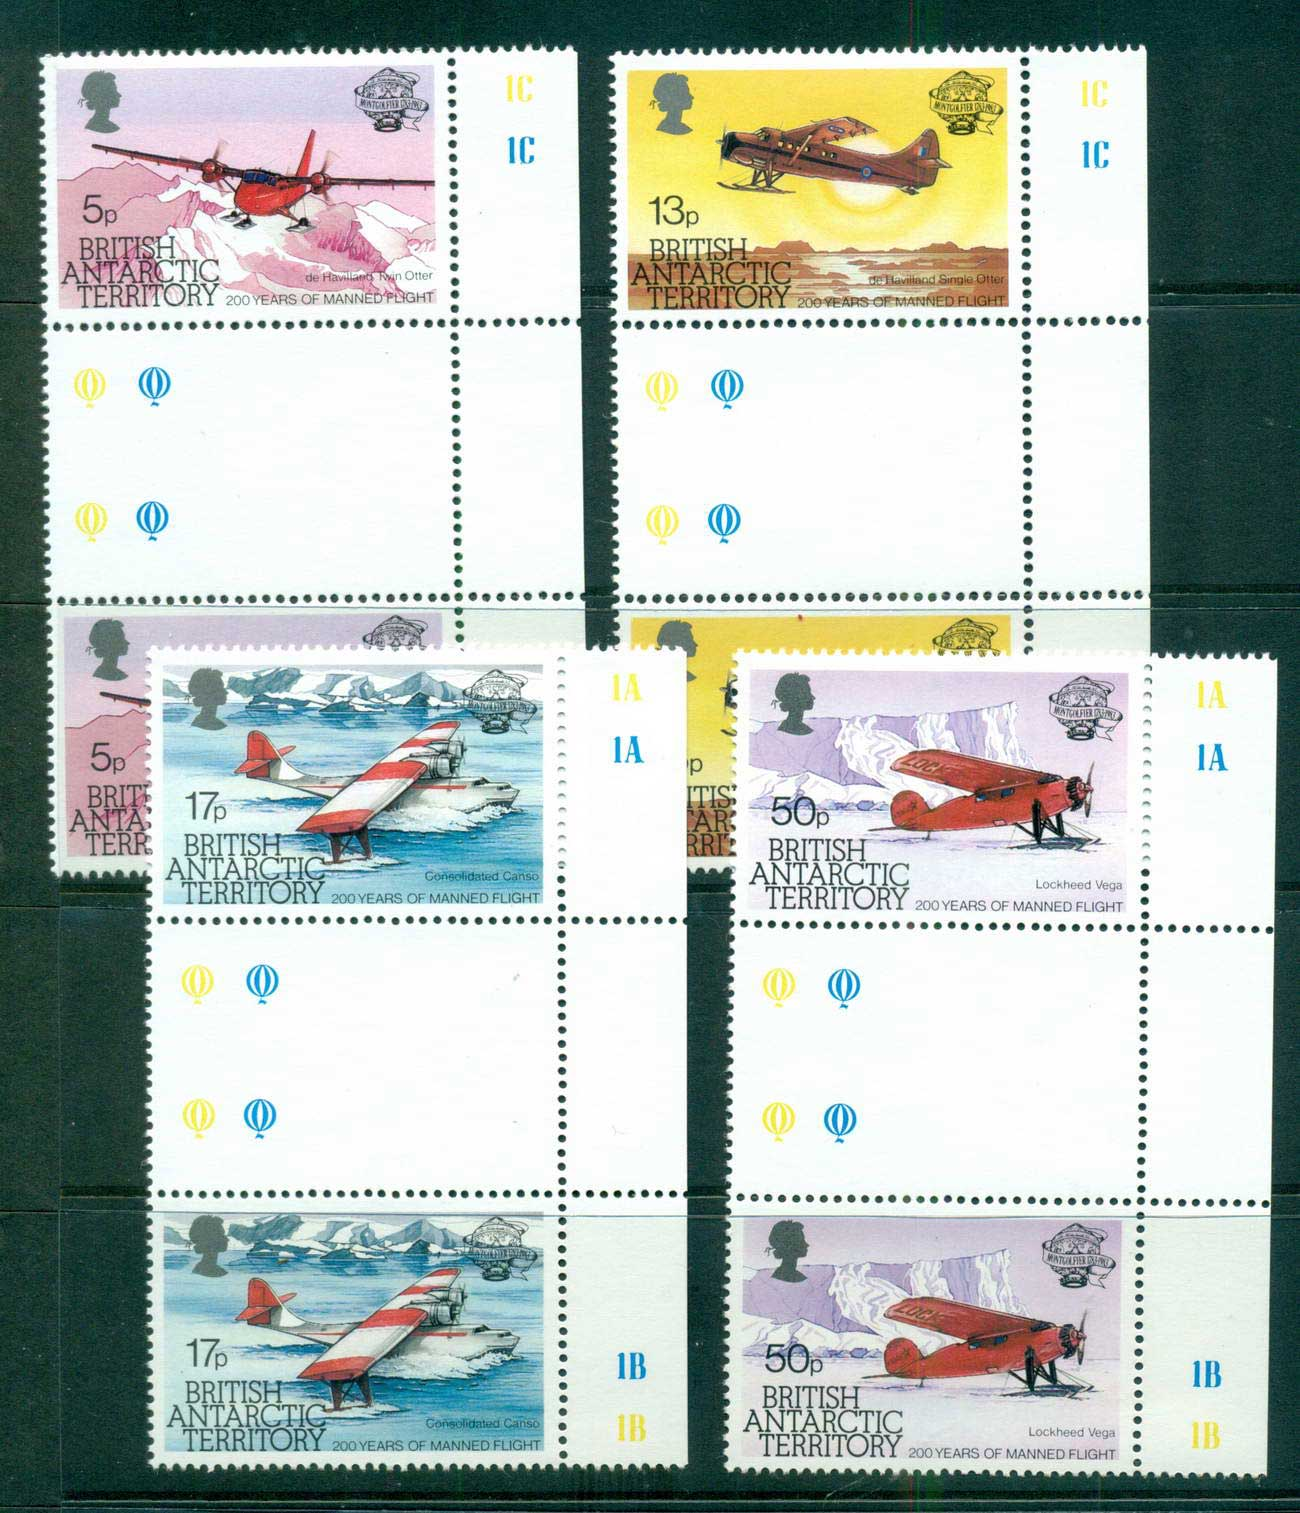 BAT 1983 Manned Flight Bicentenary gutter prs. MUH lot58886